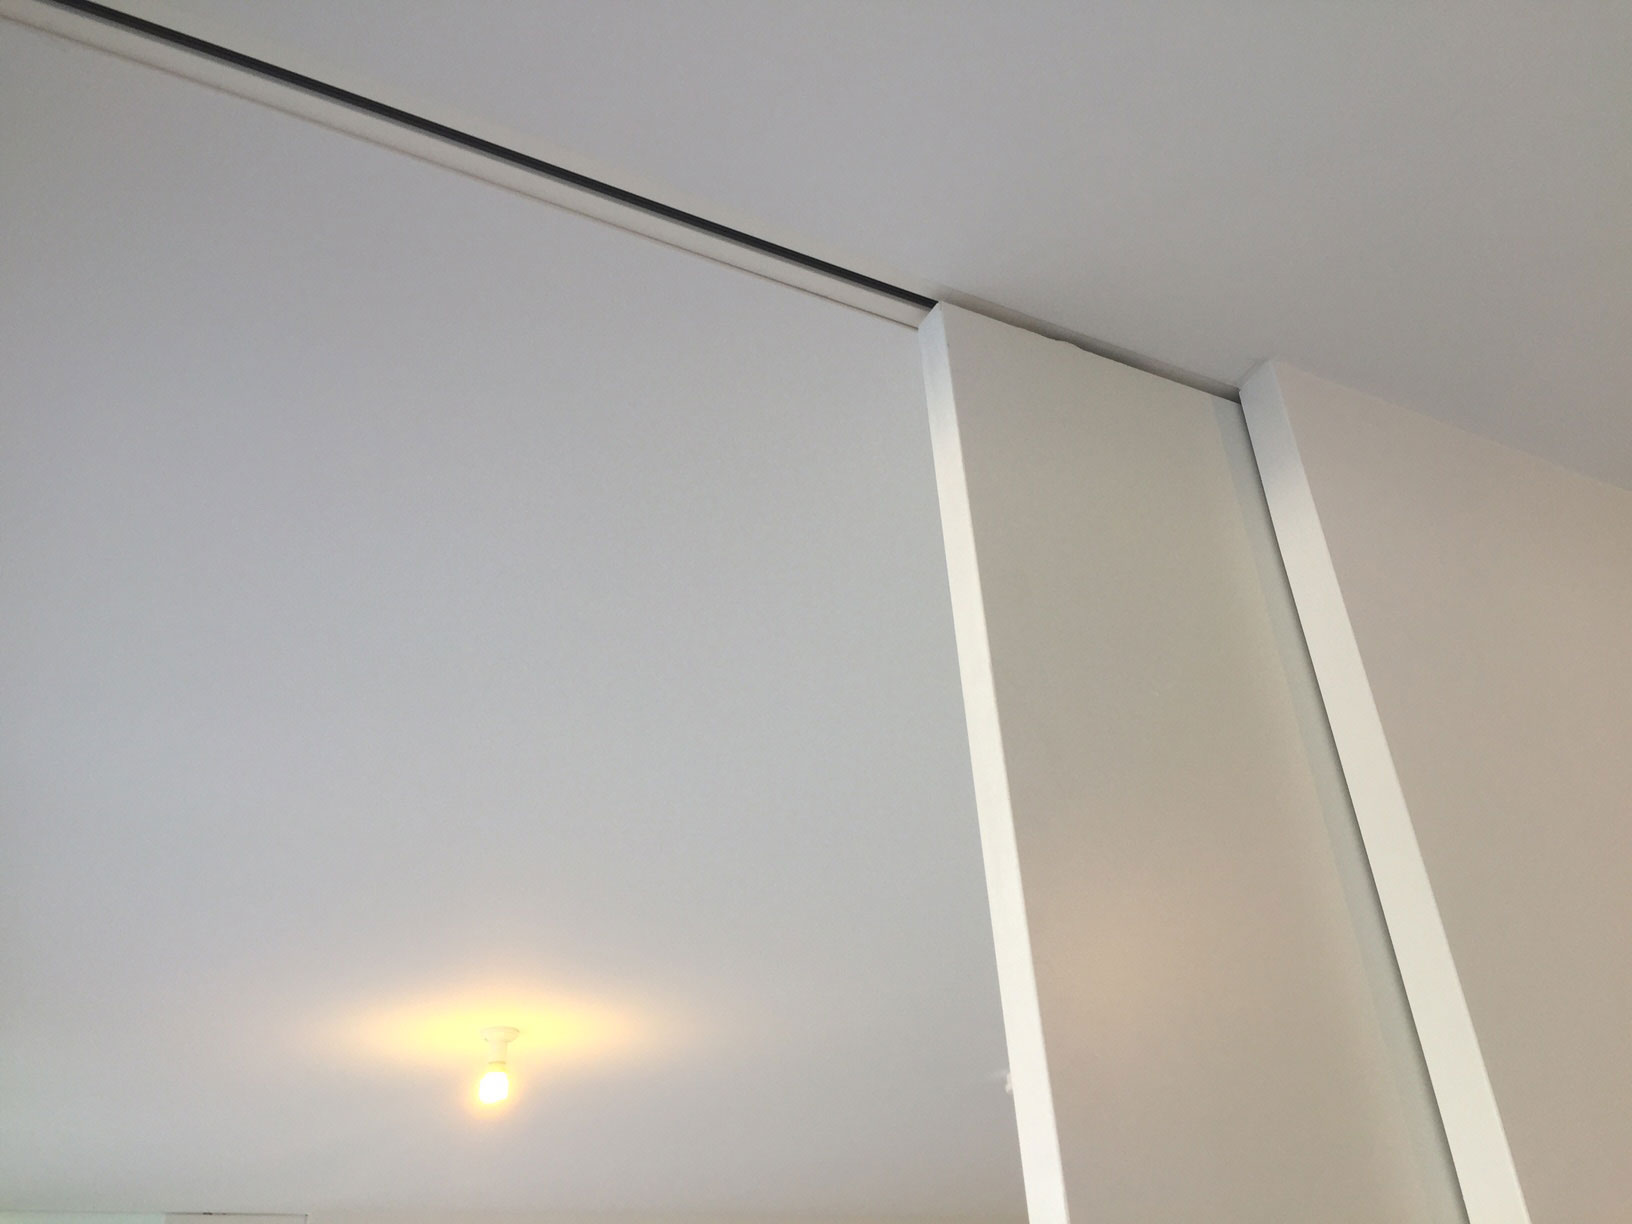 Full Height Ceiling Mounted Track System